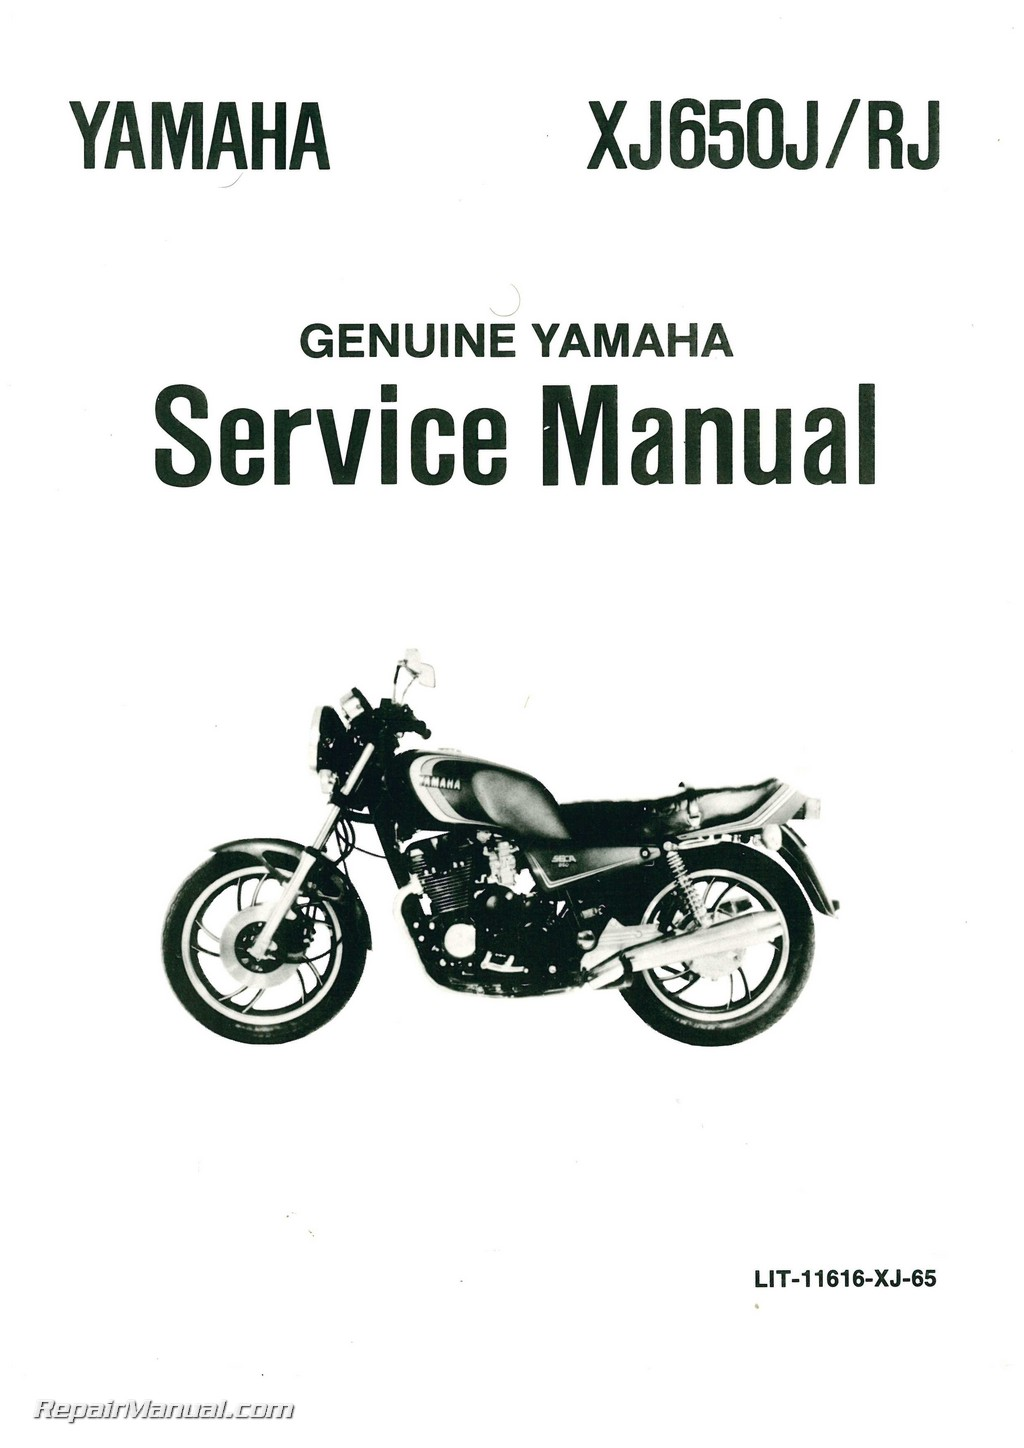 Yamaha Motorcycle Repair